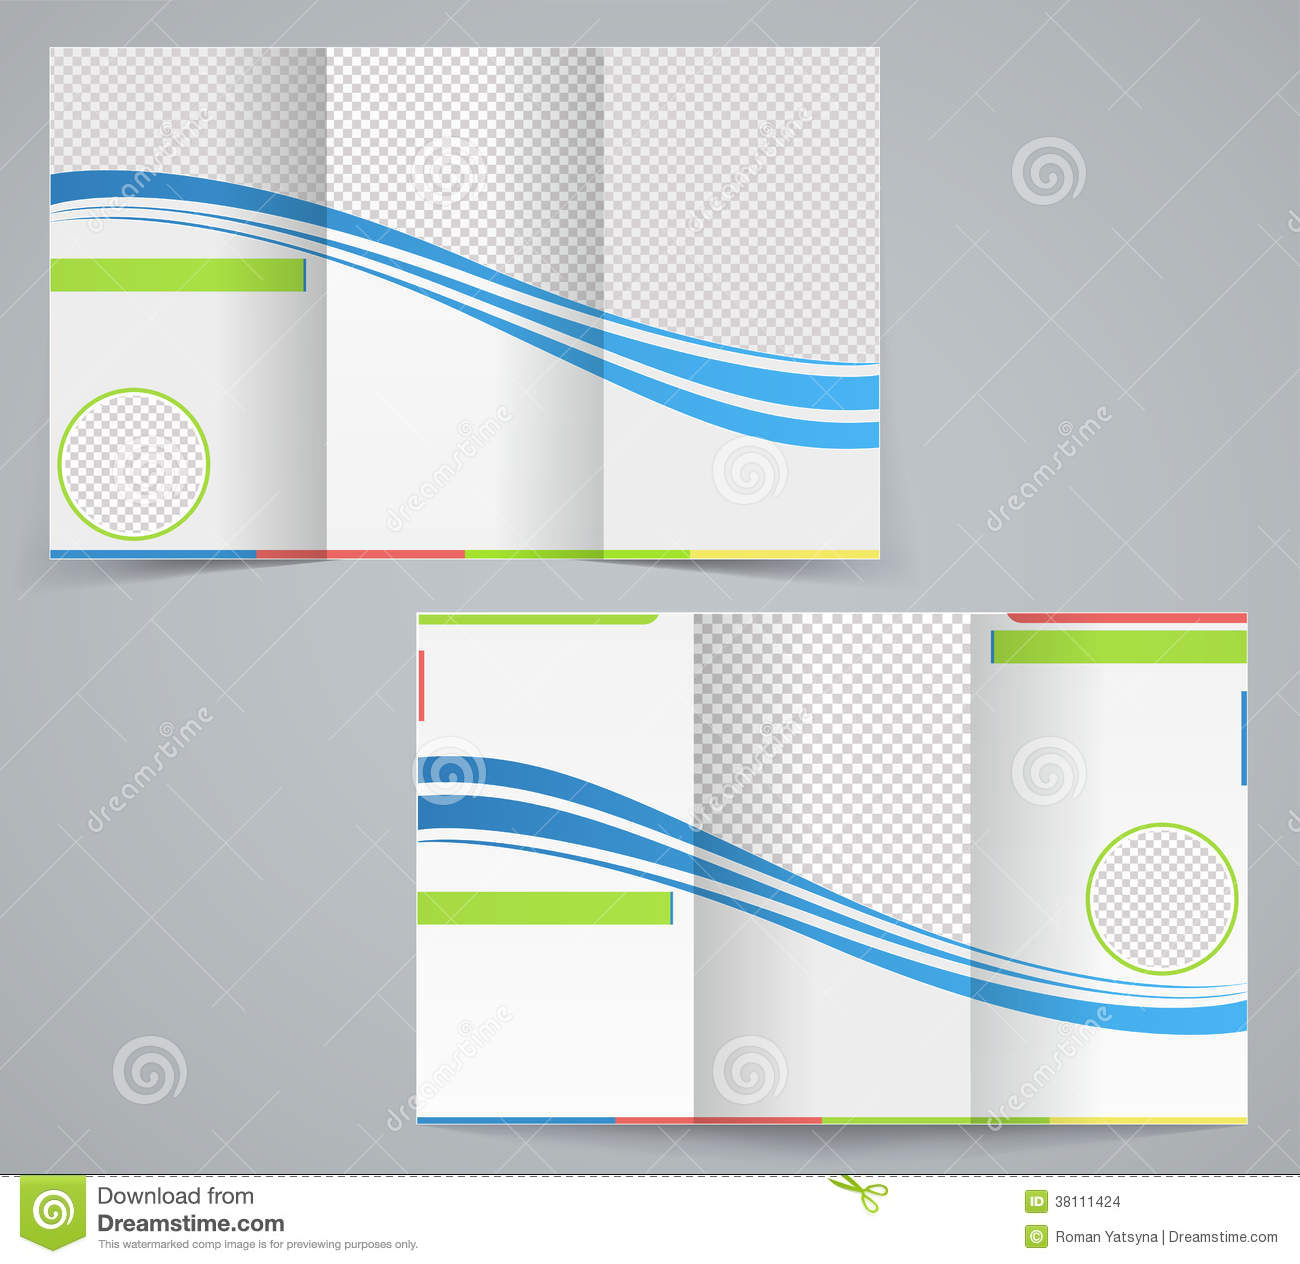 free tri fold brochure templates download - tri fold business brochure template stock vector